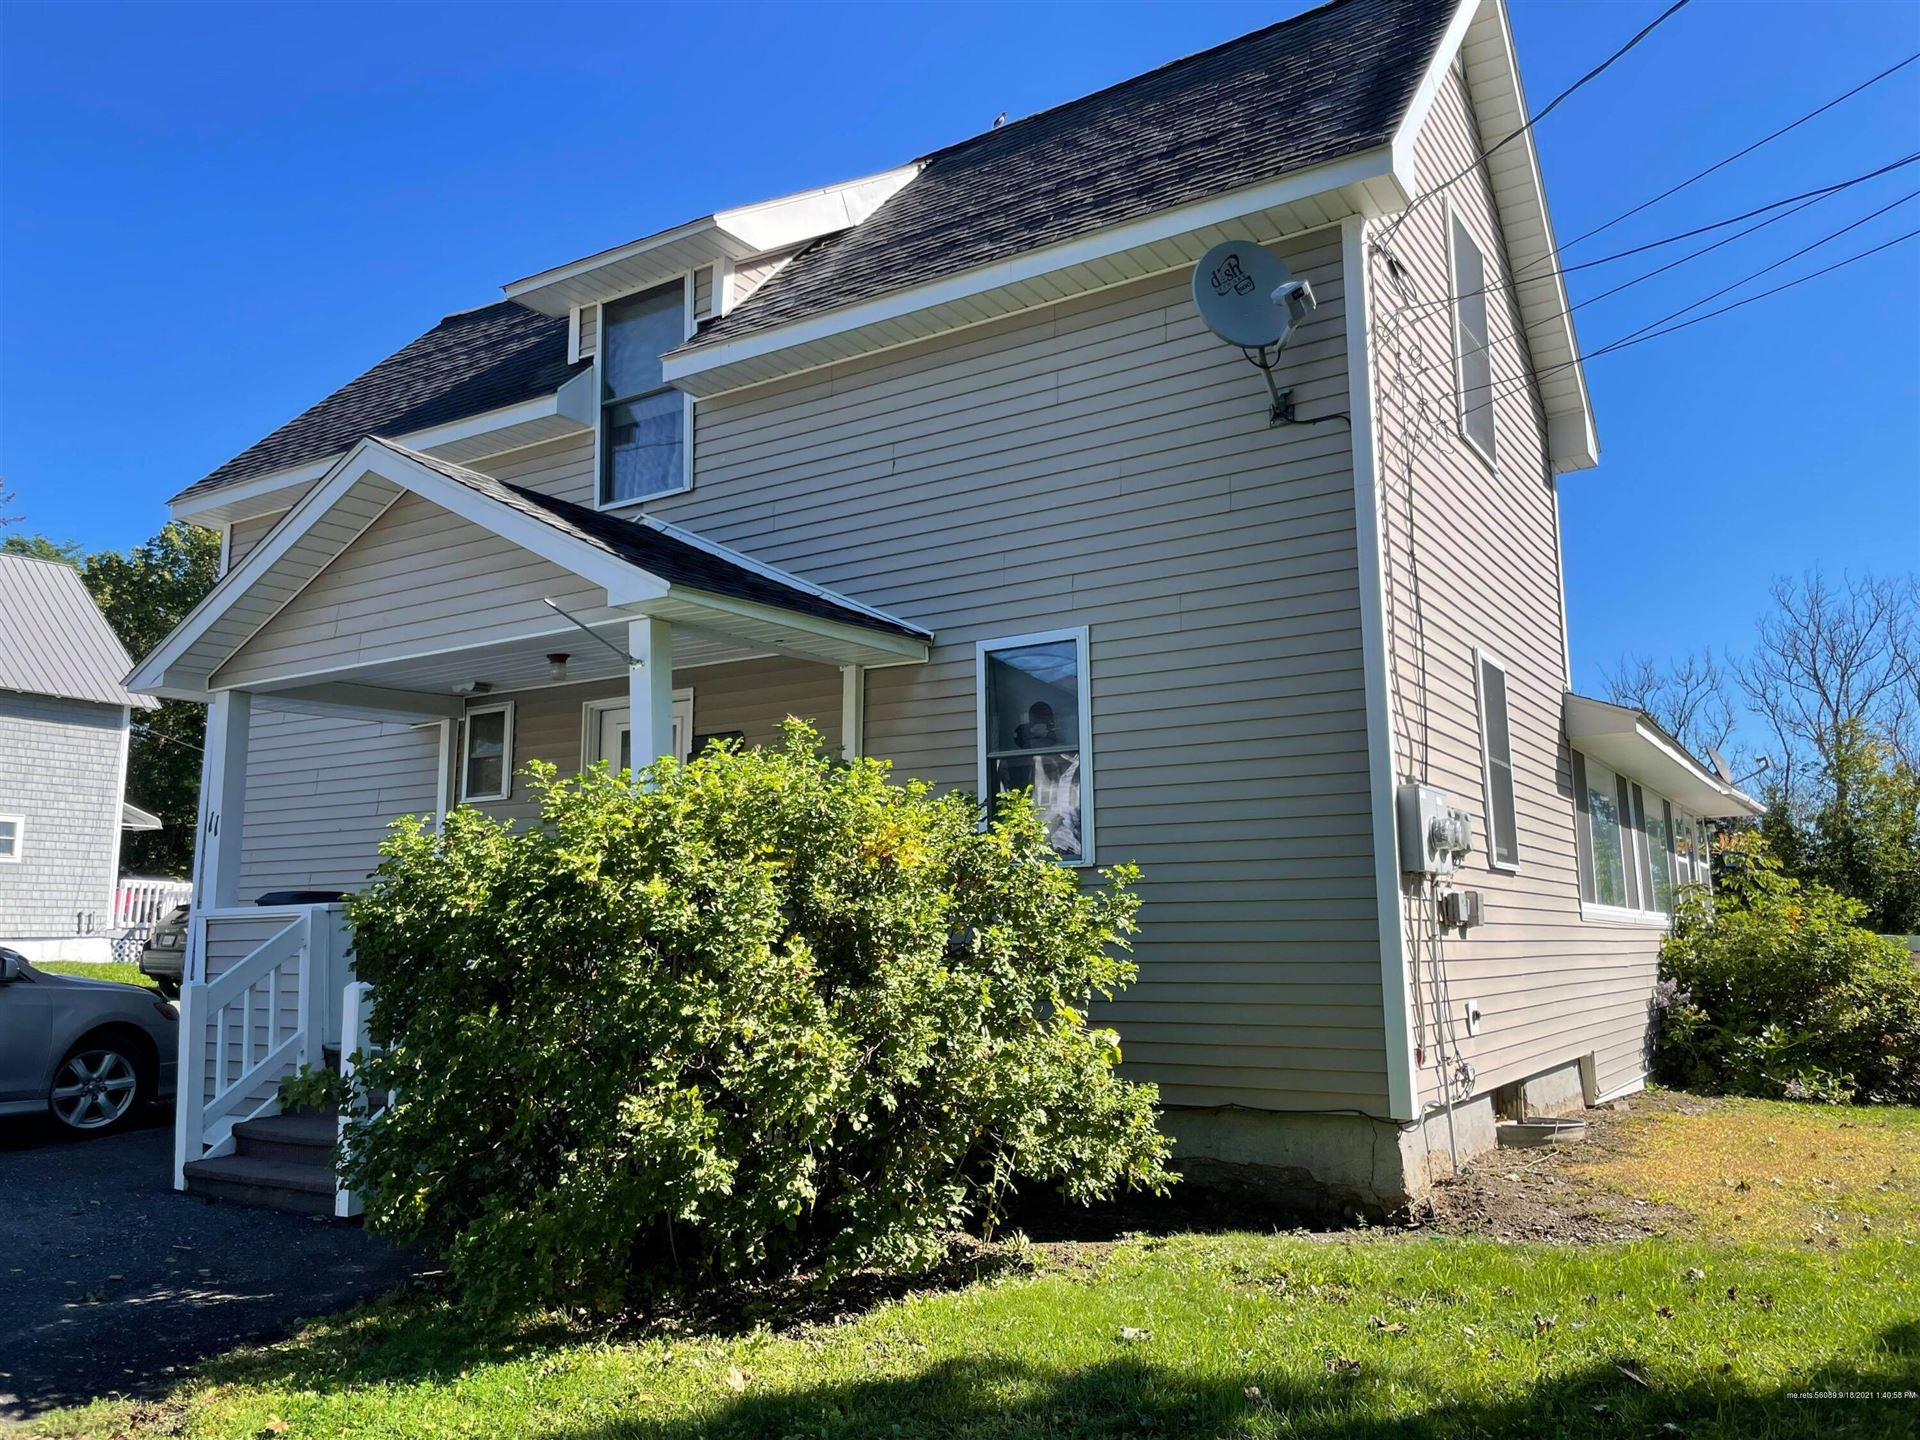 Photo of 11 Page Avenue, Caribou, ME 04736 (MLS # 1509364)